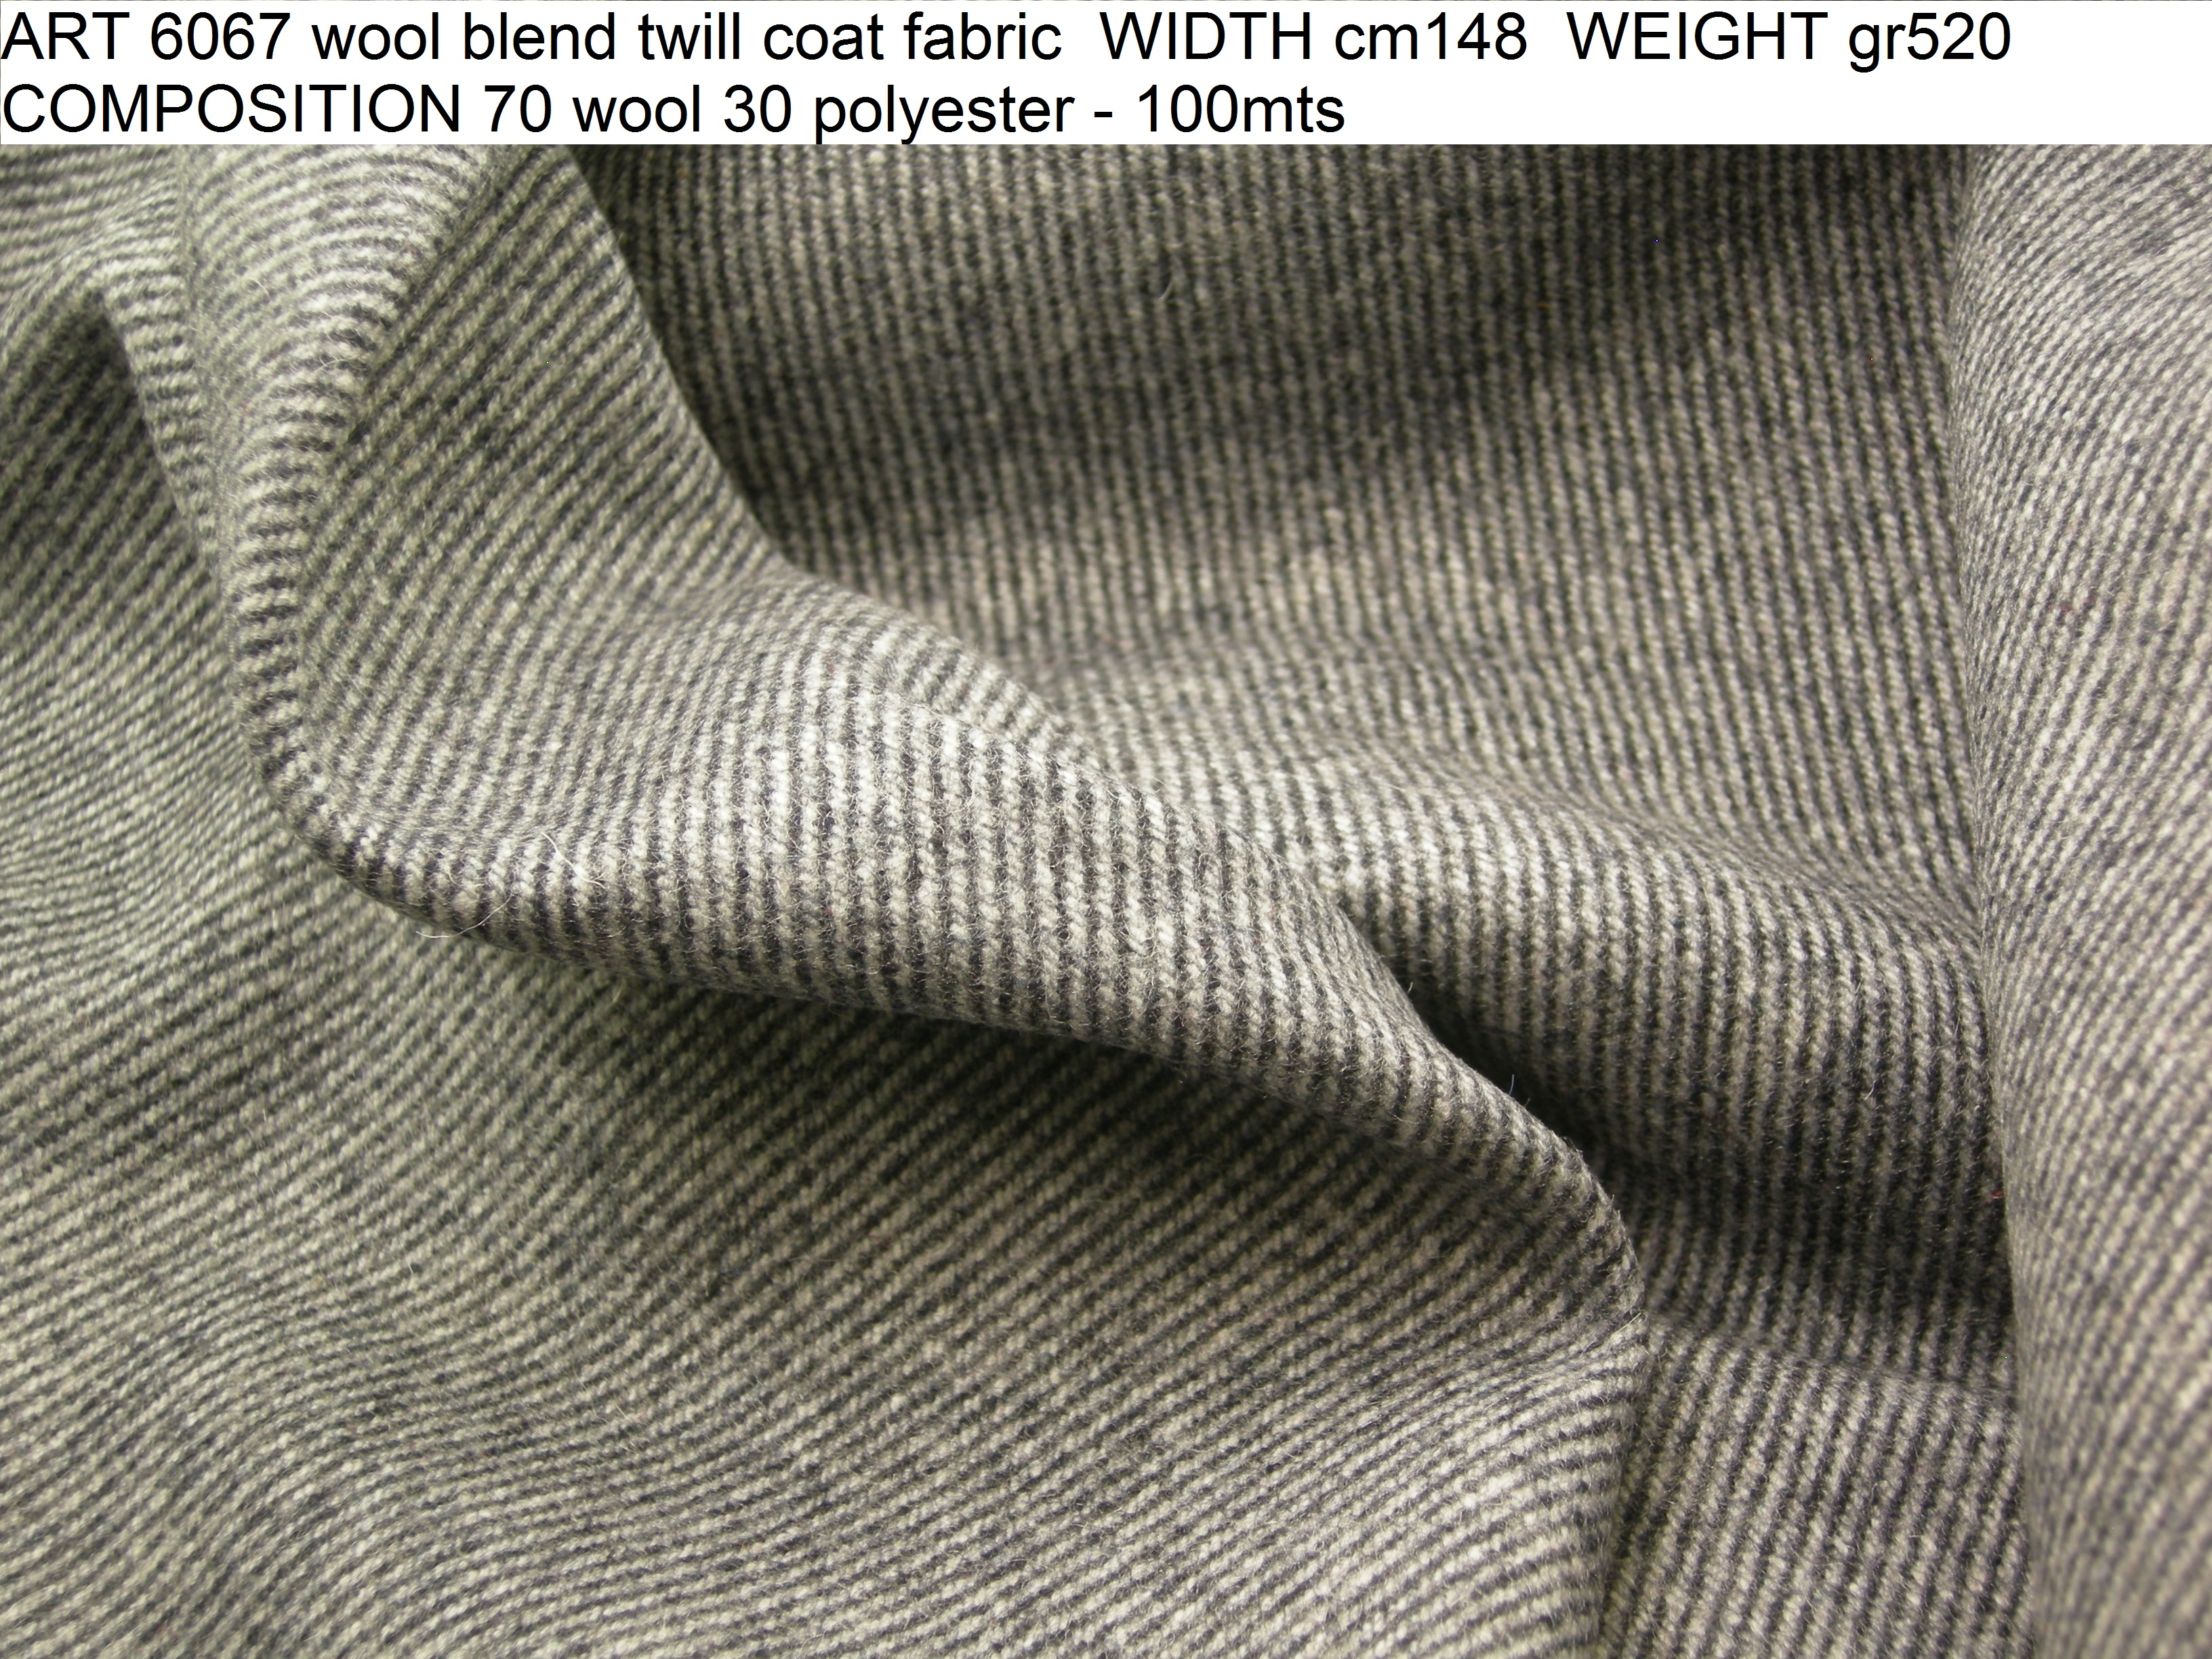 ART 6067 wool blend twill coat fabric WIDTH cm148 WEIGHT gr520 COMPOSITION 70 wool 30 polyester - 100mts